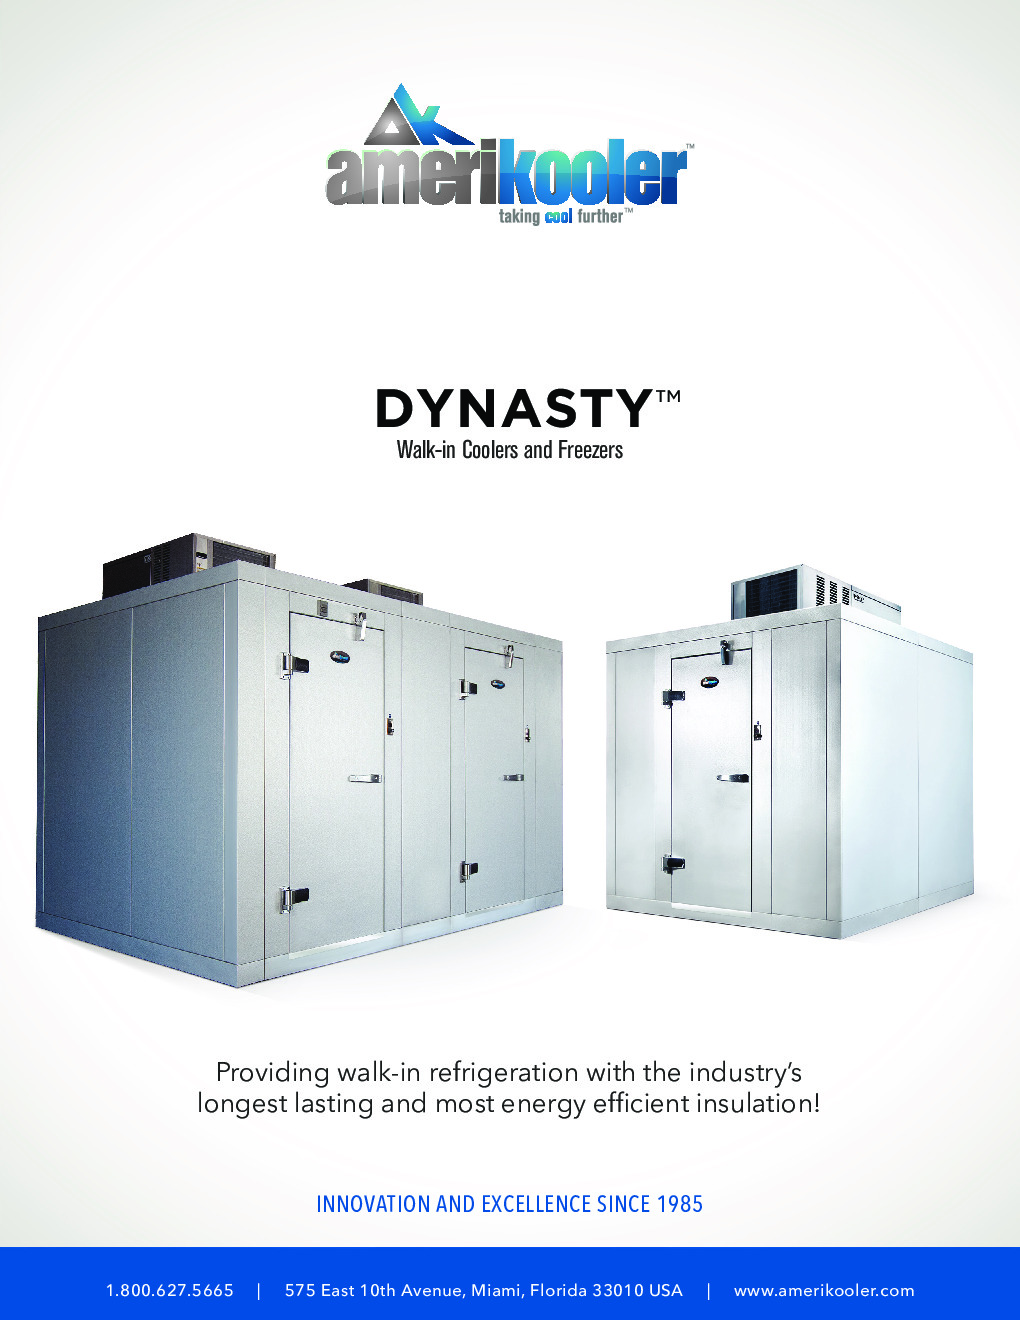 AmeriKooler DW081577F-6/9-RM 8' X 15' Walk-In Cooler, 9' L Cooler with Floor and 6' L Freezer, Remote